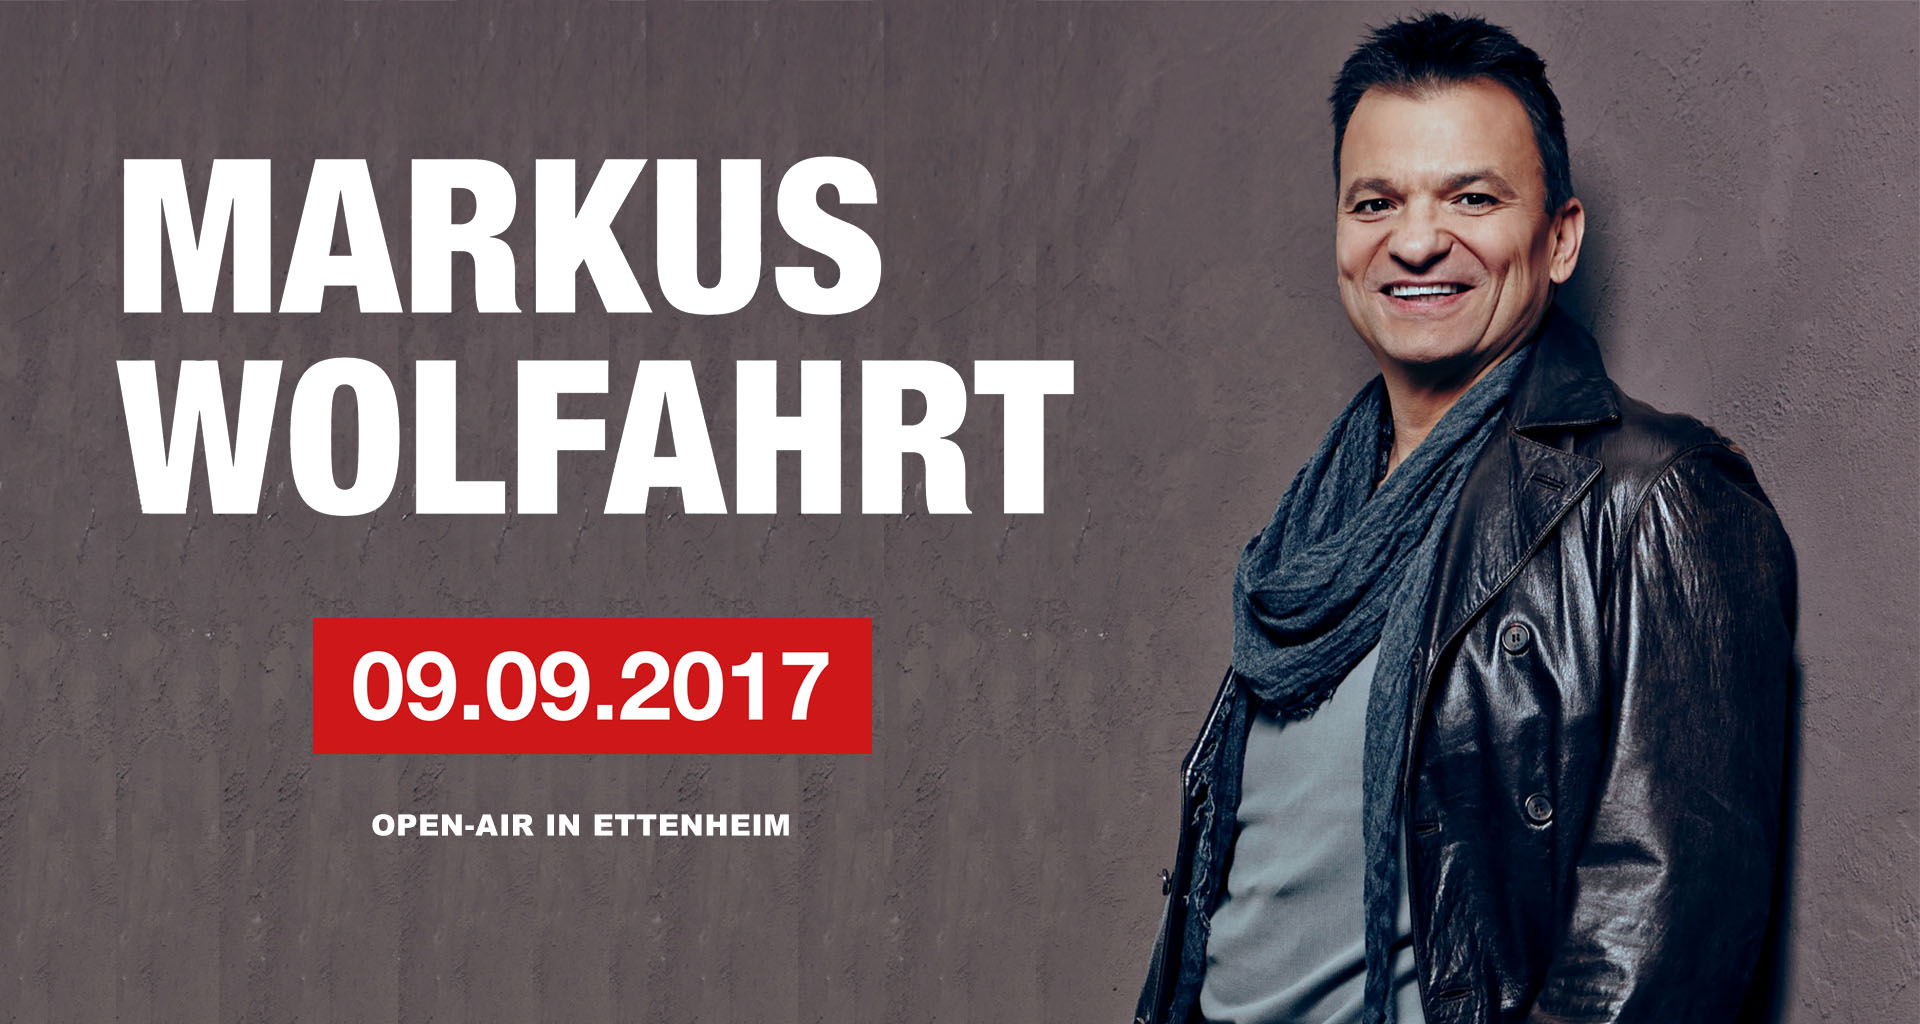 Top Event - Open-Air-Konzert mit Markus Wolfahrt